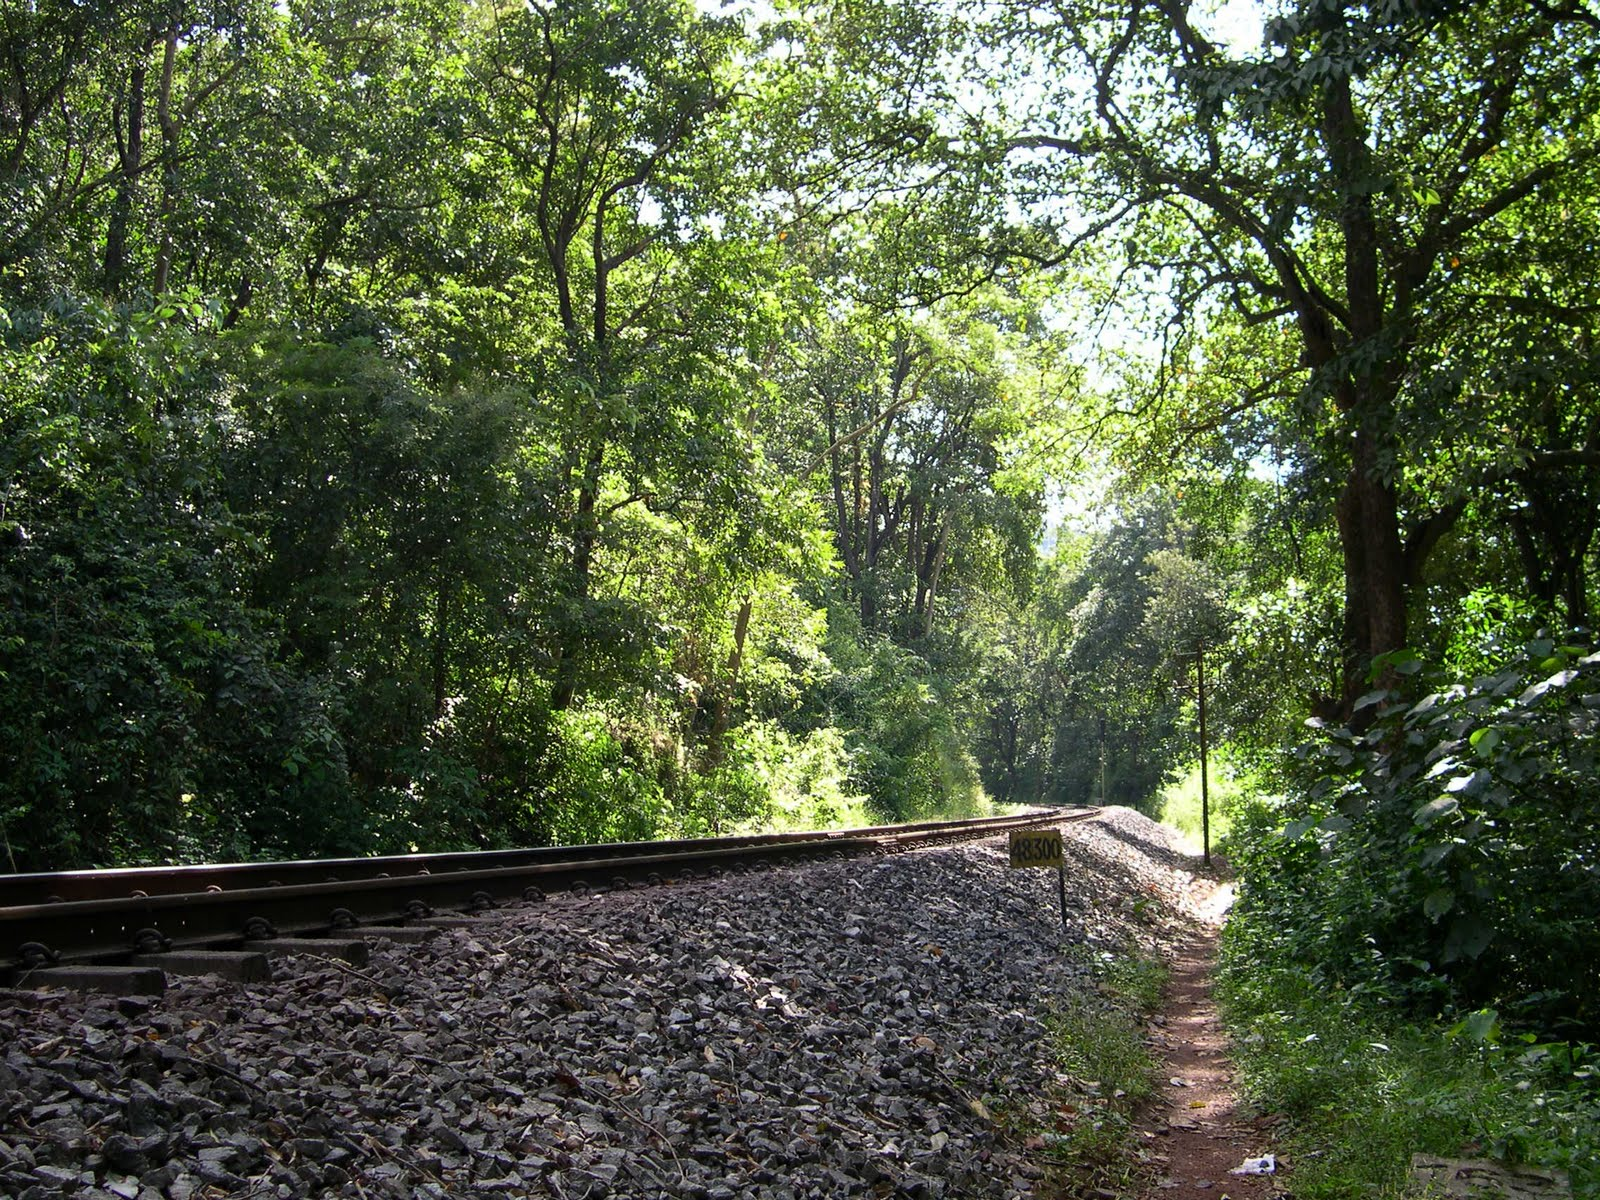 The Indian Railways track.